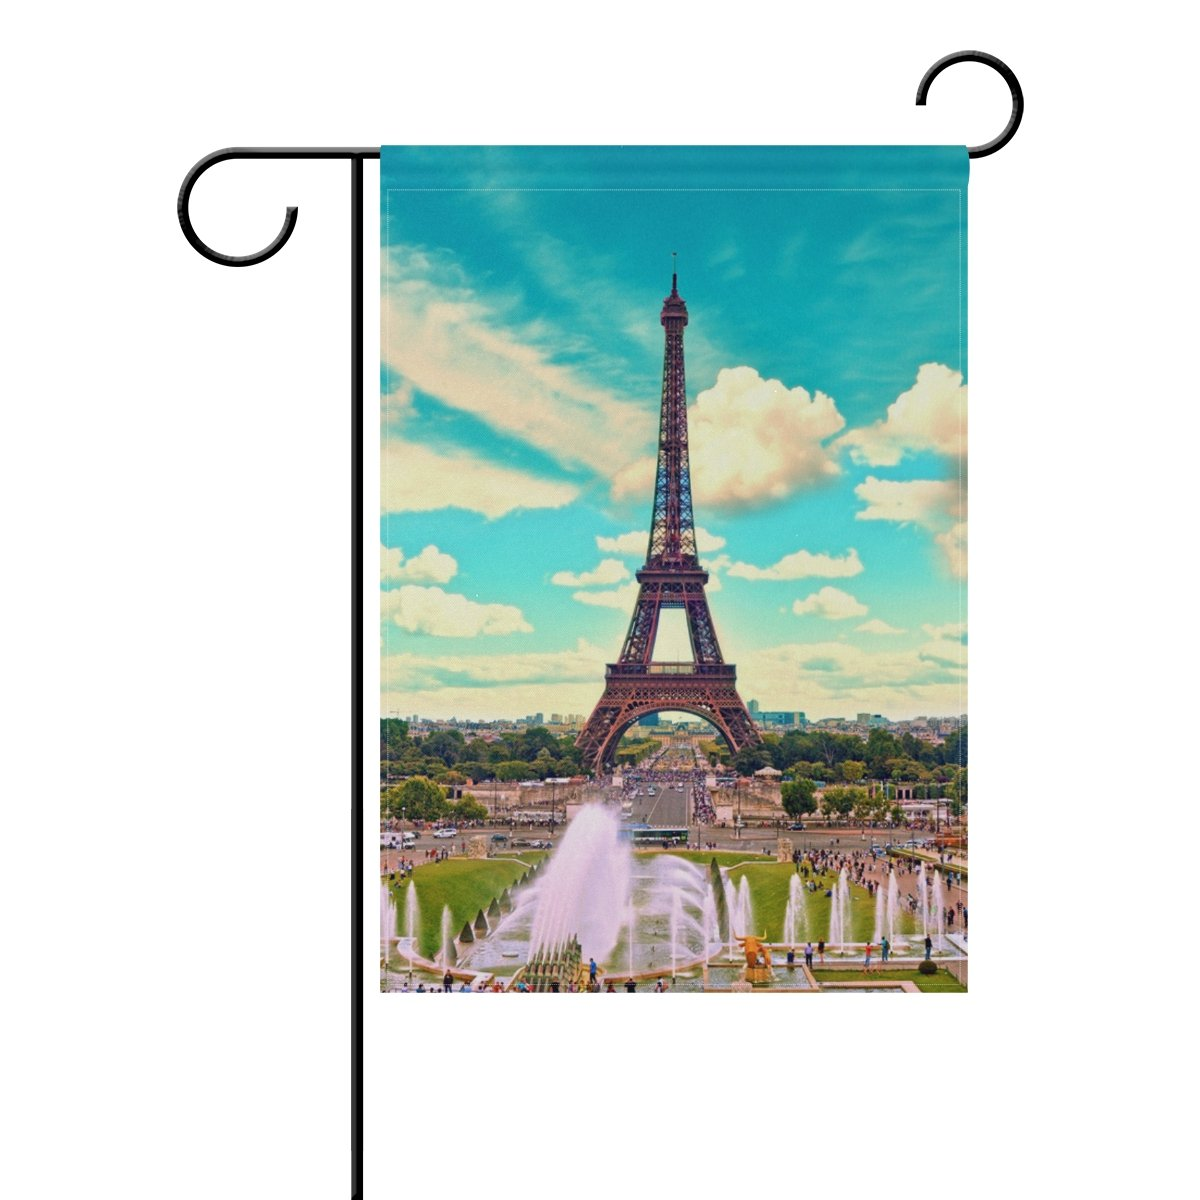 Blue Viper Paris Eiffel Tower And Fountain Garden Flag Banner 28 x 40 Inch Decorative Garden Flag for Outdoor Lawn and Garden Home Décor Double-Sided